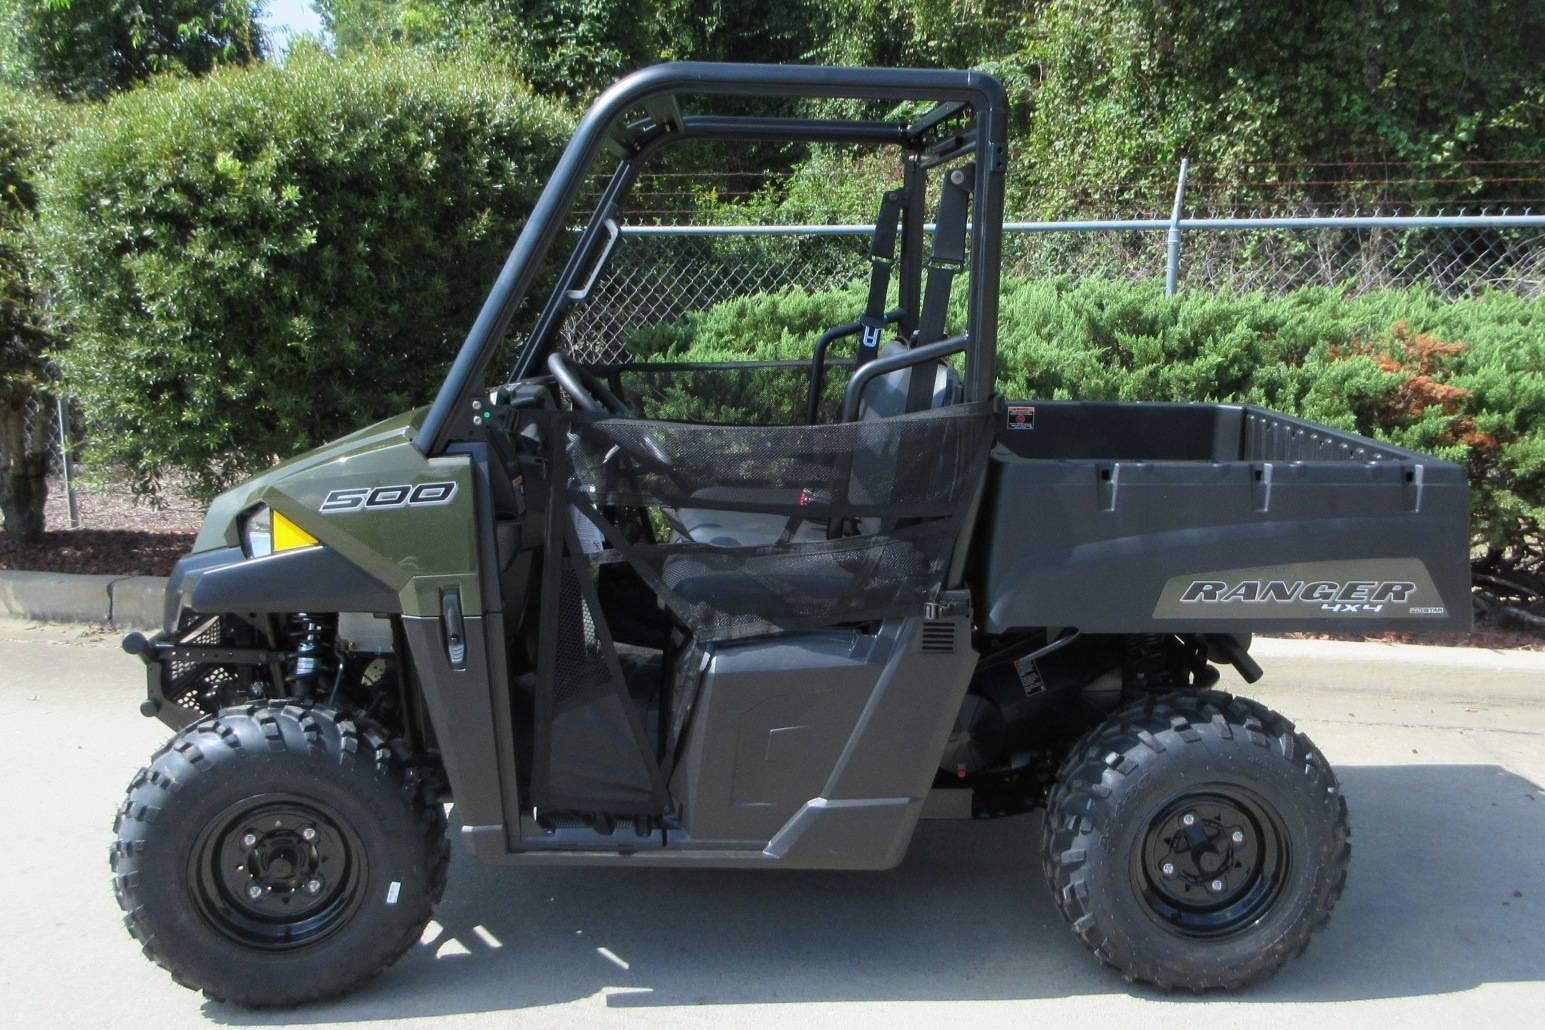 New Original Ranger 500 UTV 1